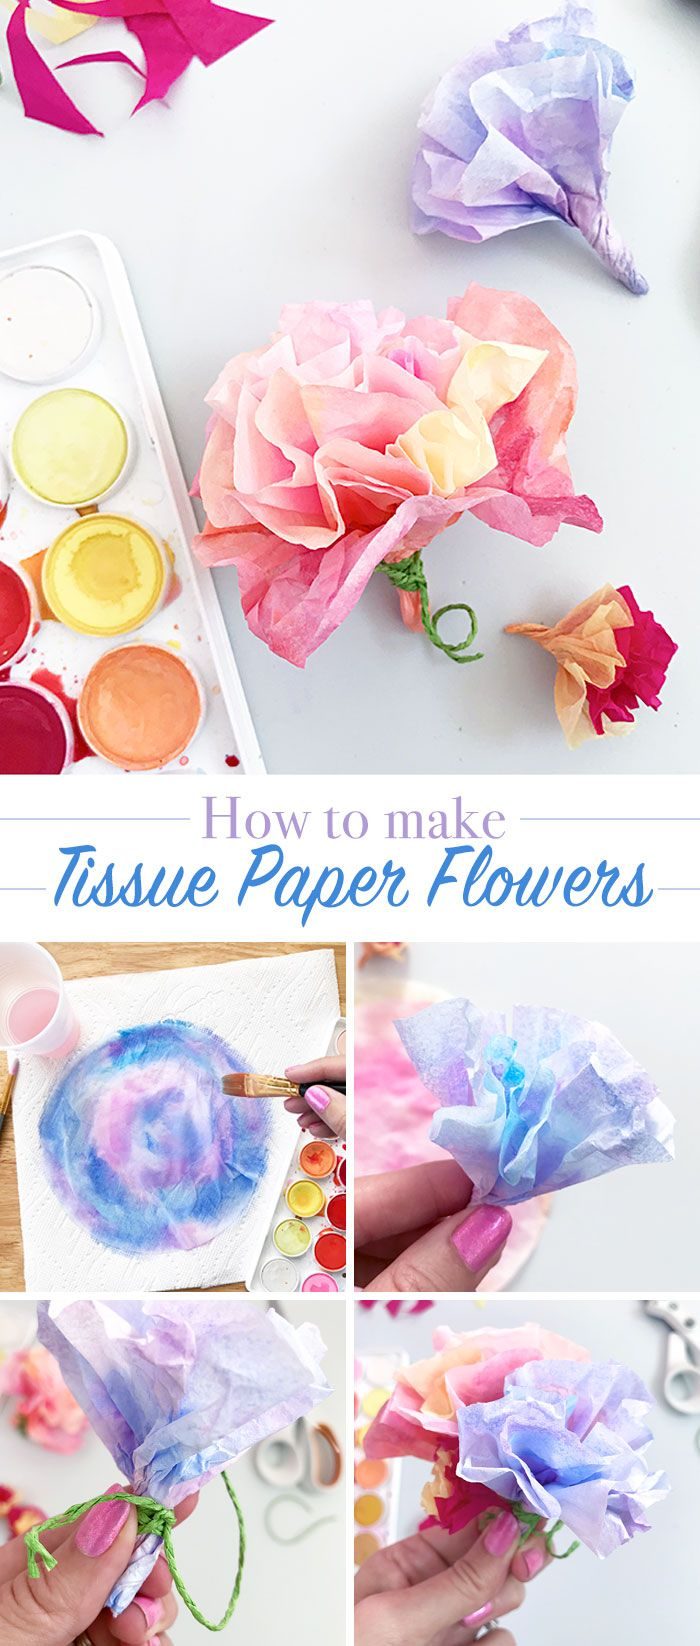 Make Easy Tissue Paper Flowers Kids Craft Ideas Pinterest